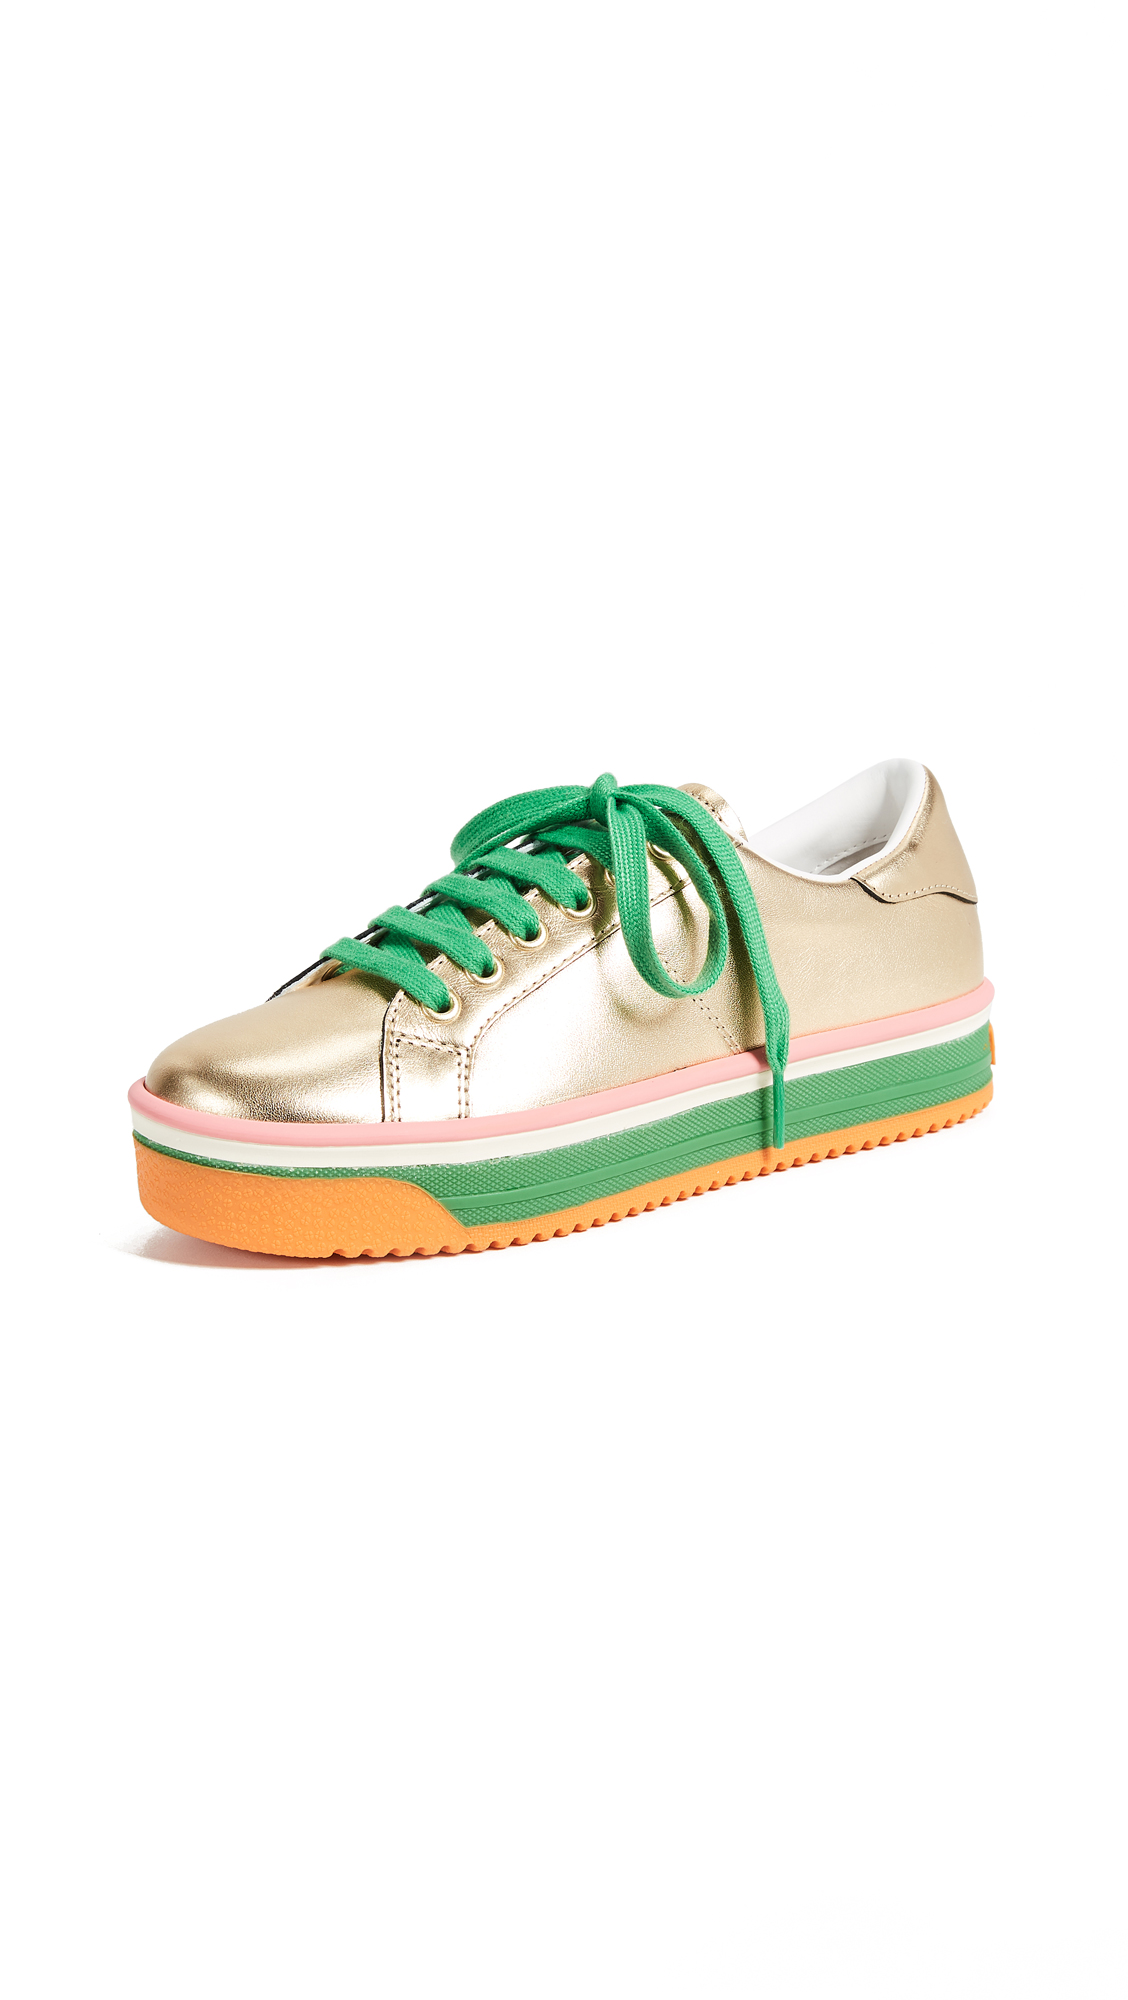 Marc Jacobs Empire Multi Color Sole Sneakers - Gold/Green Multi